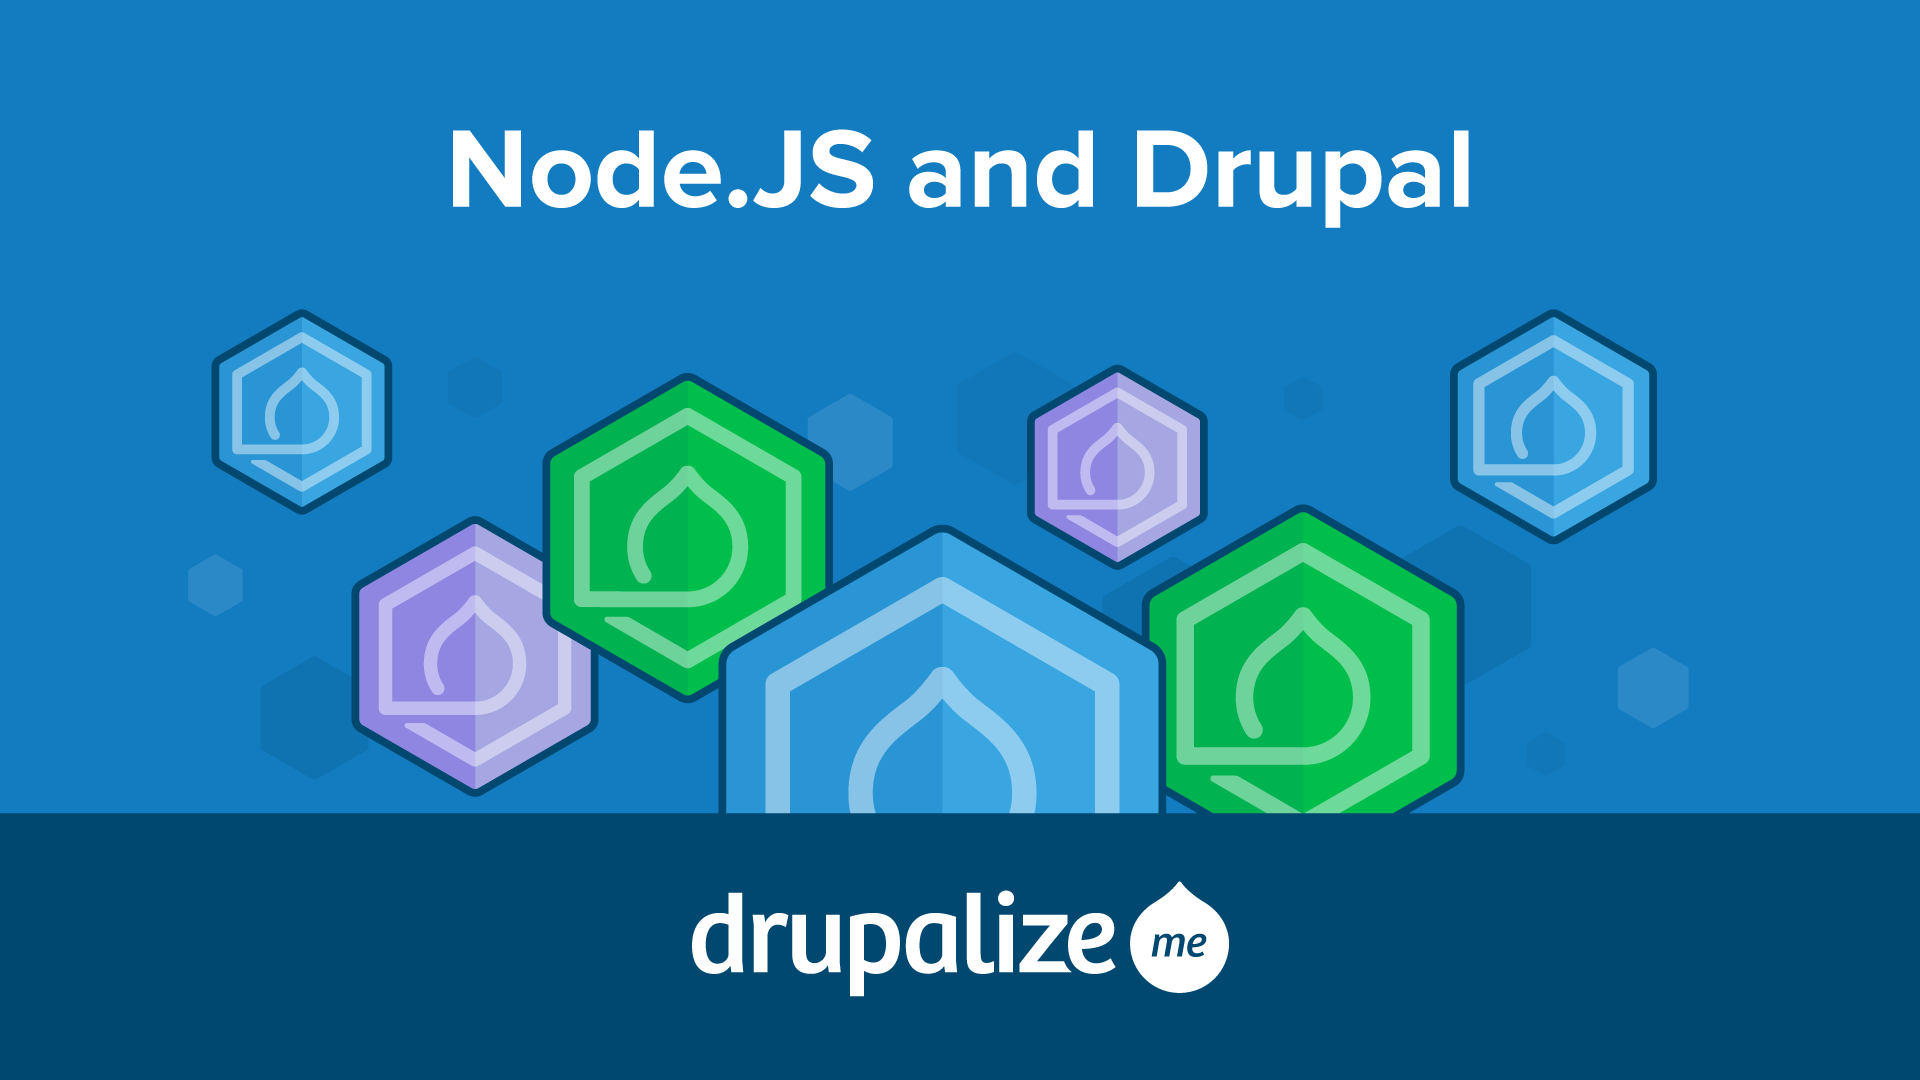 Node.js and Drupal